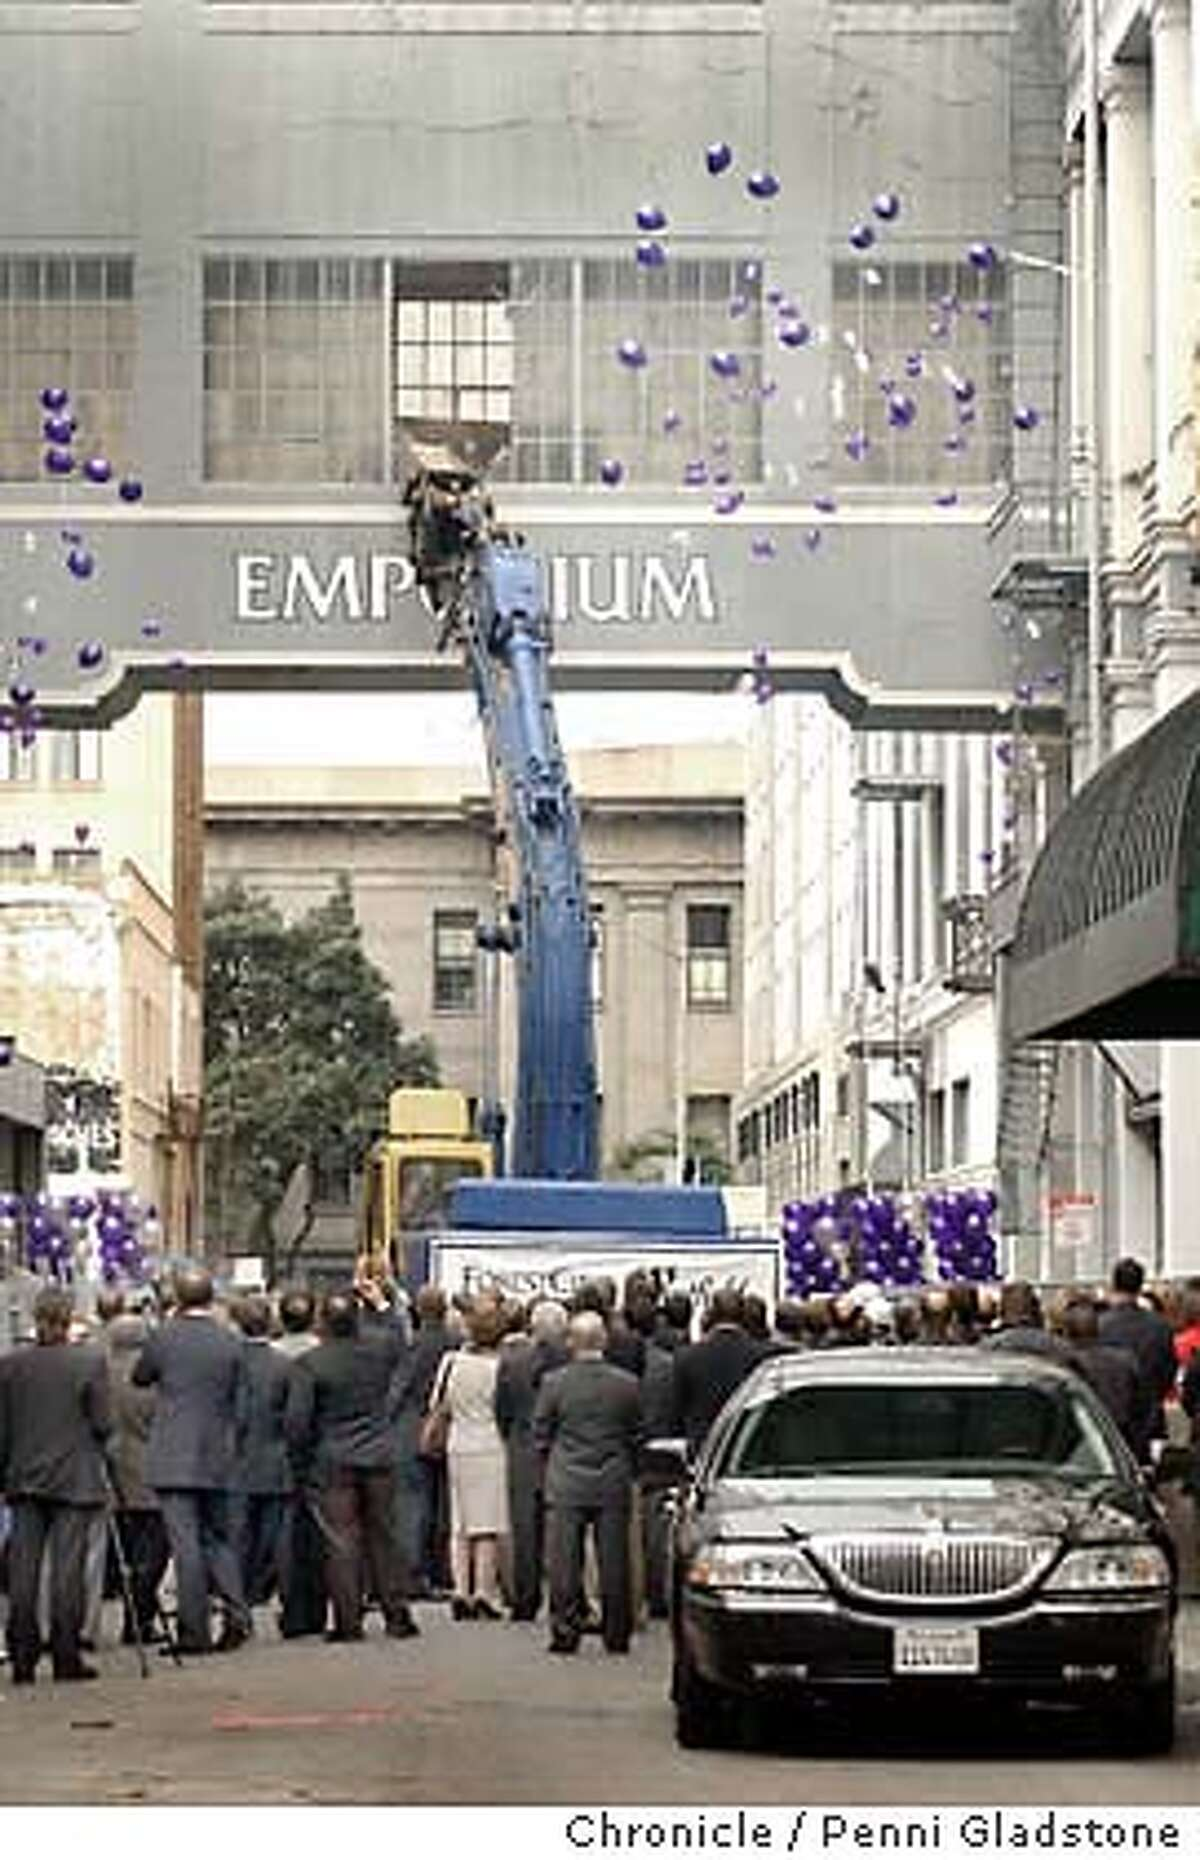 Invited spectators watch as a machine punches a hole in the empoium window walkway between Mission and Market. That's the mayors car in front. $410 million Bloomingdale's project ground breaking ceremony at old Emporium. on 11/13/03, in San Francisco, CA.. Photo by PENNI GLADSTONE / The San Francisco Chronicle